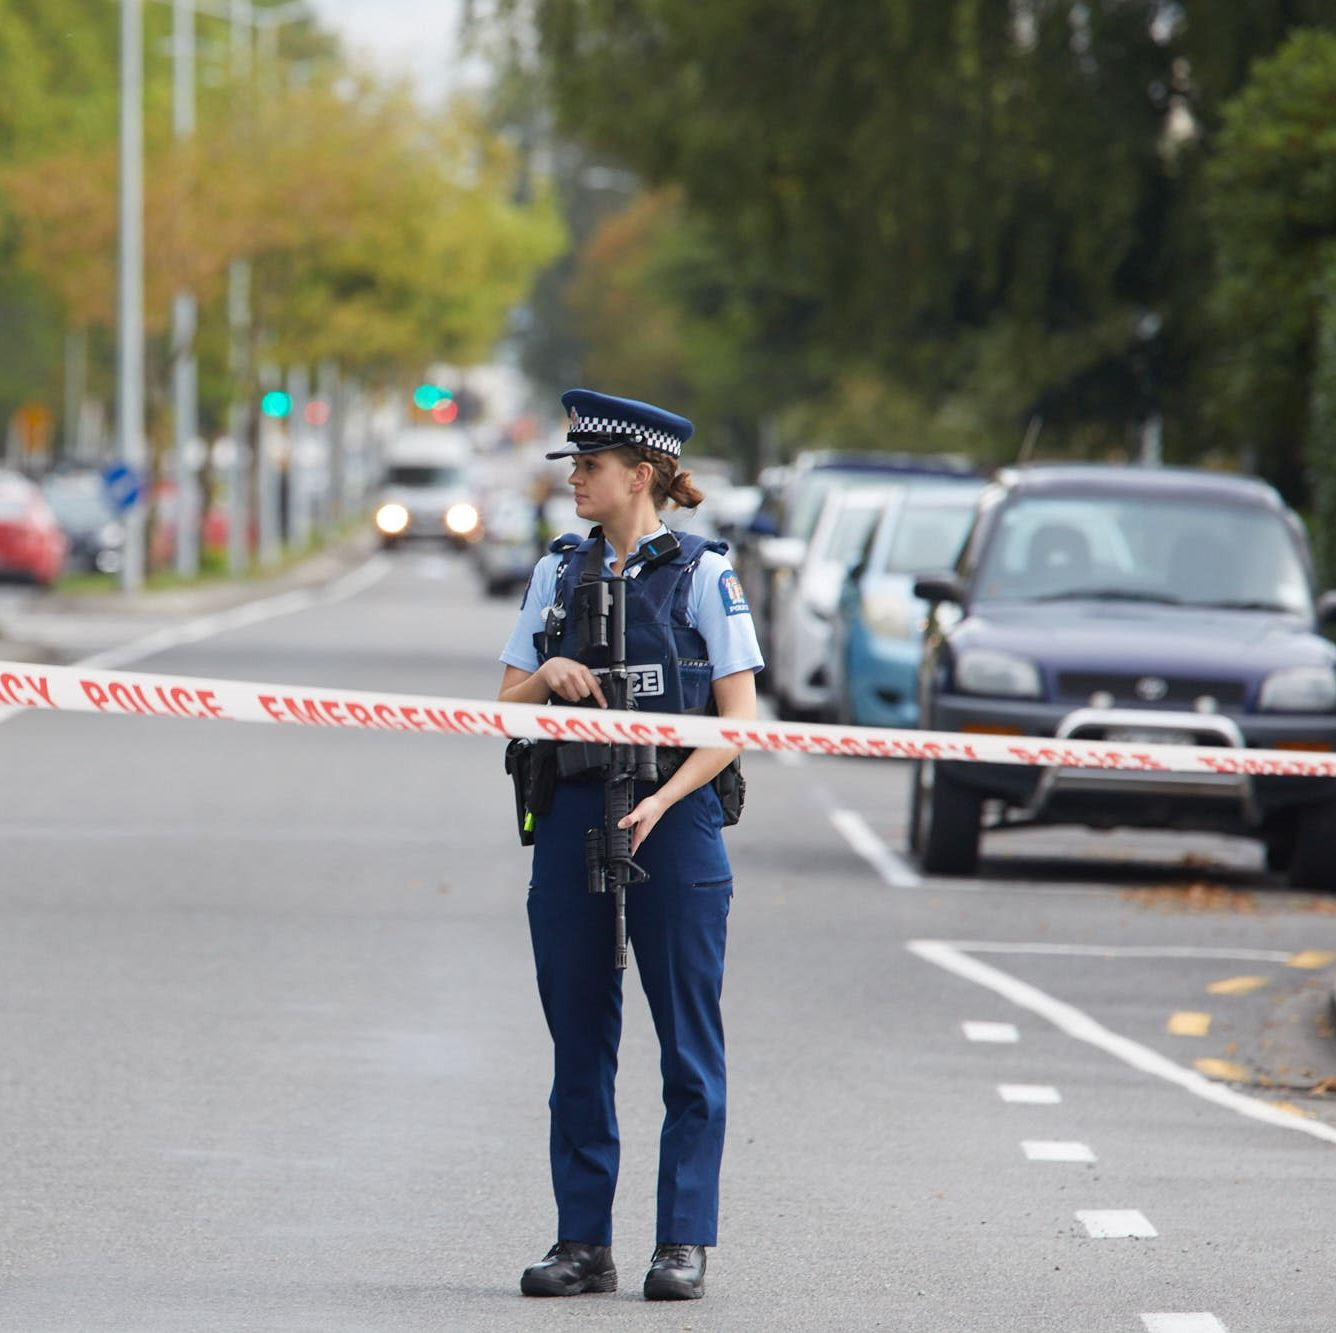 How to Donate to New Zealand Christchurch Shooting Victims and Their Families